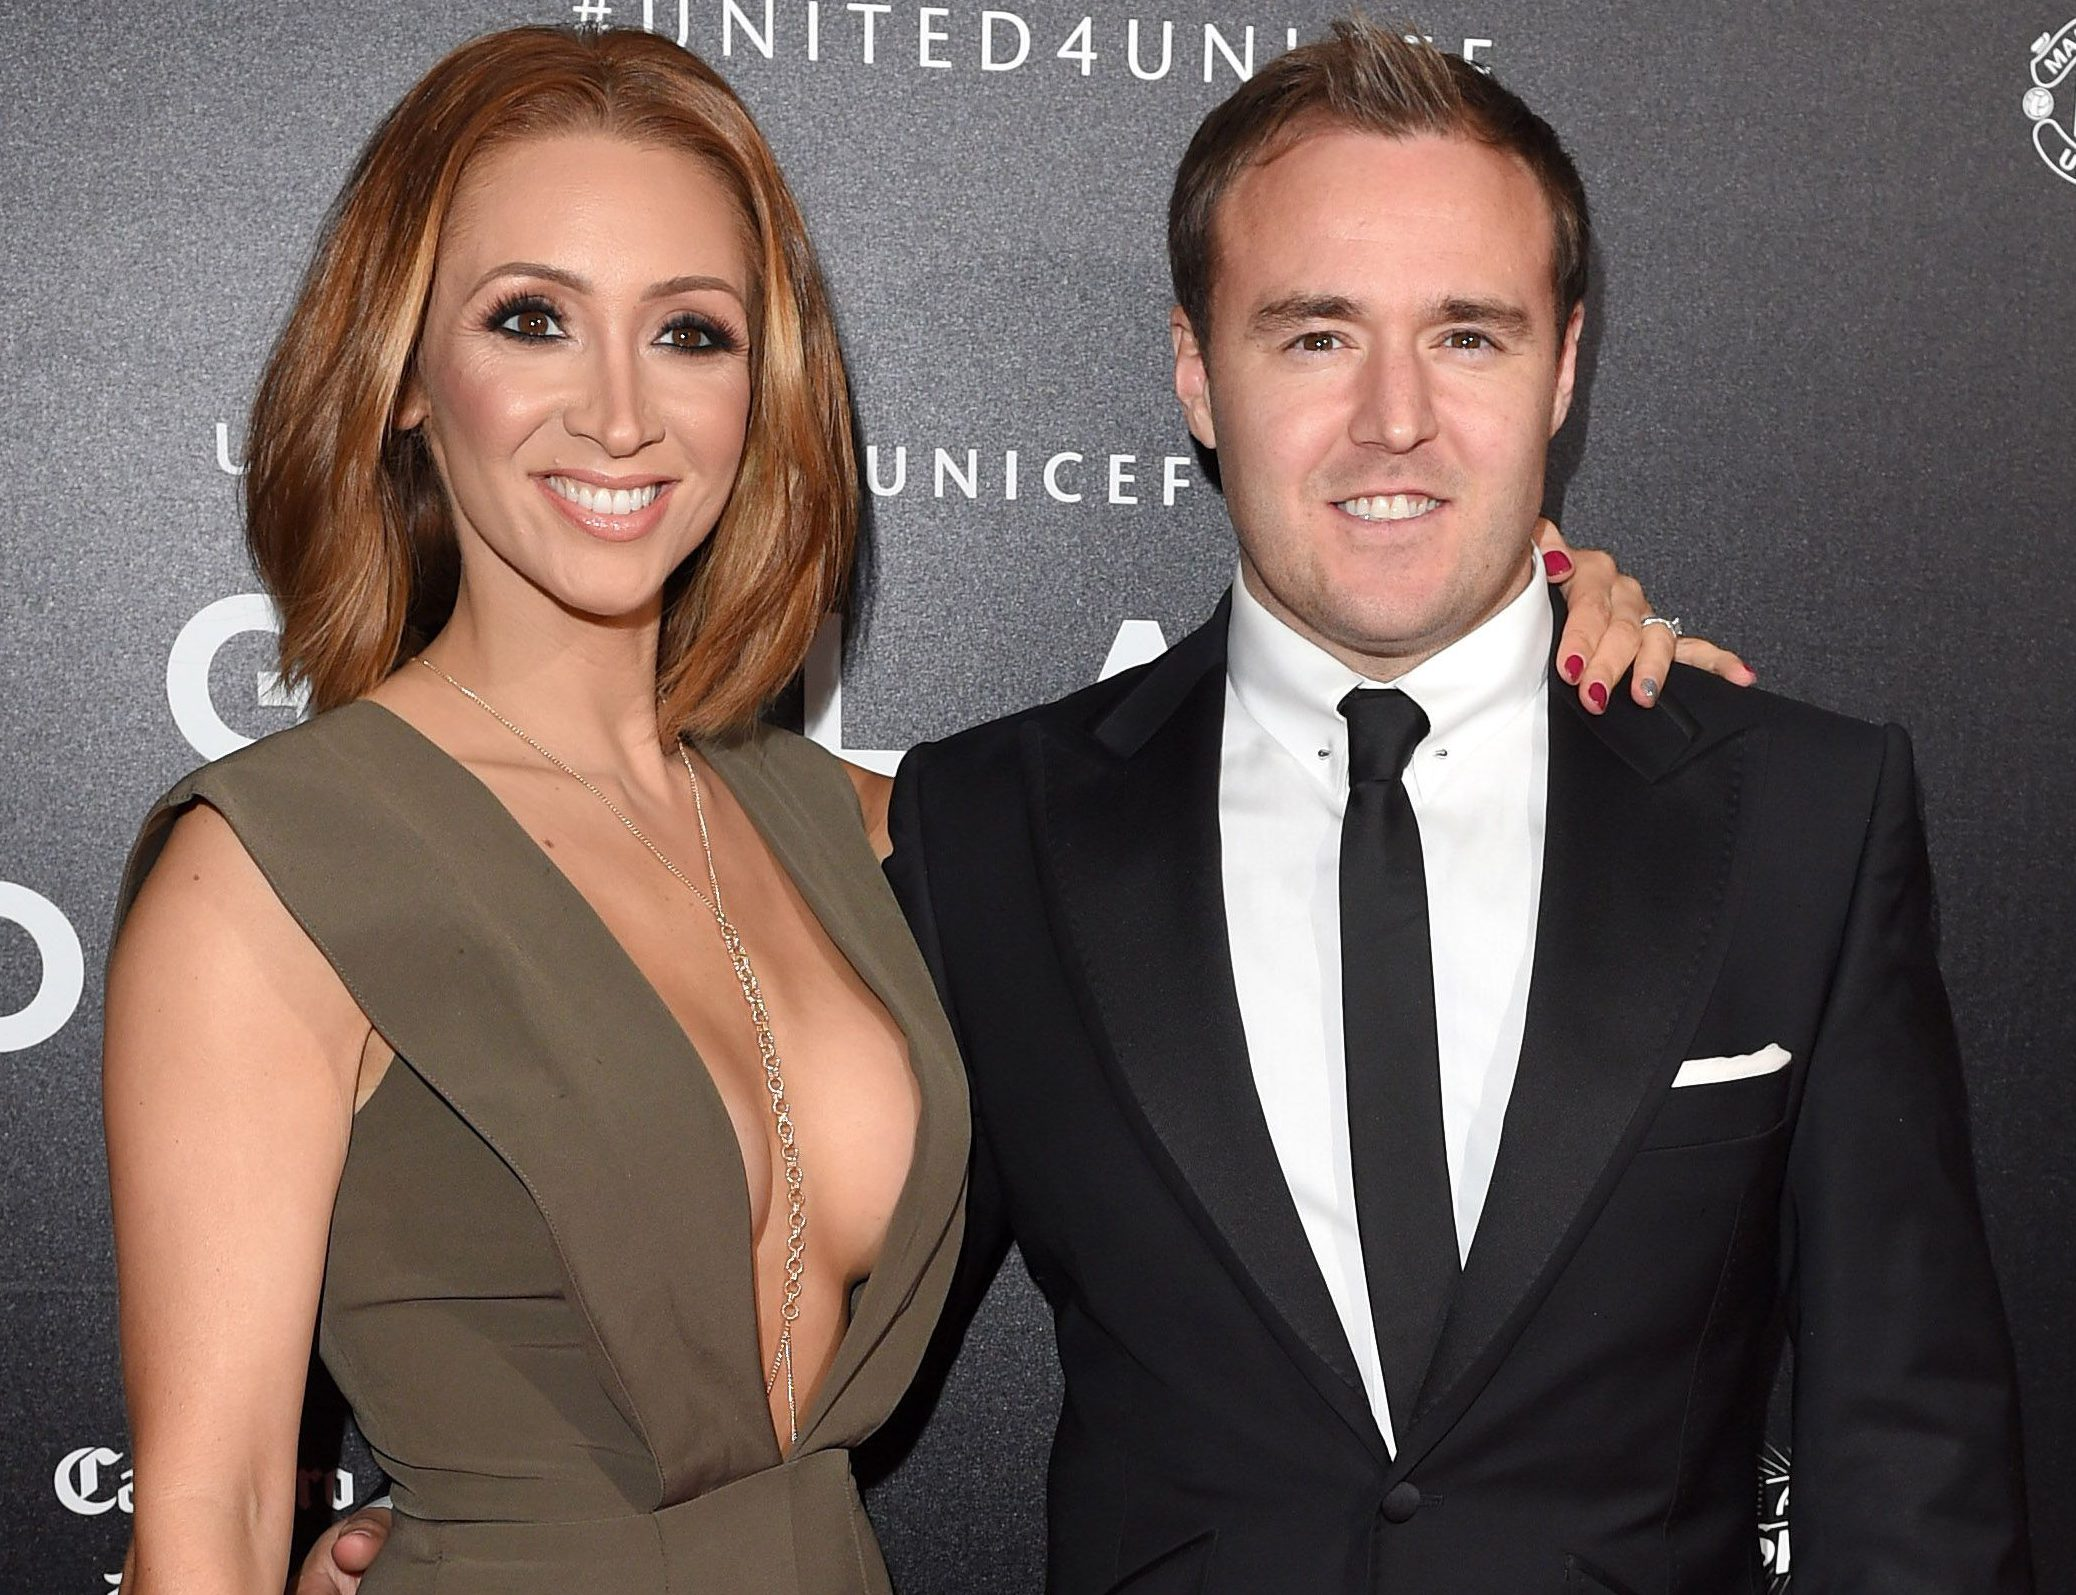 MANCHESTER, ENGLAND - NOVEMBER 29: Lucy-Jo Hudson and Alan Halsall attend the United for UNICEF Gala Dinner at Old Trafford on November 29, 2015 in Manchester, England. (Photo by Karwai Tang/WireImage)